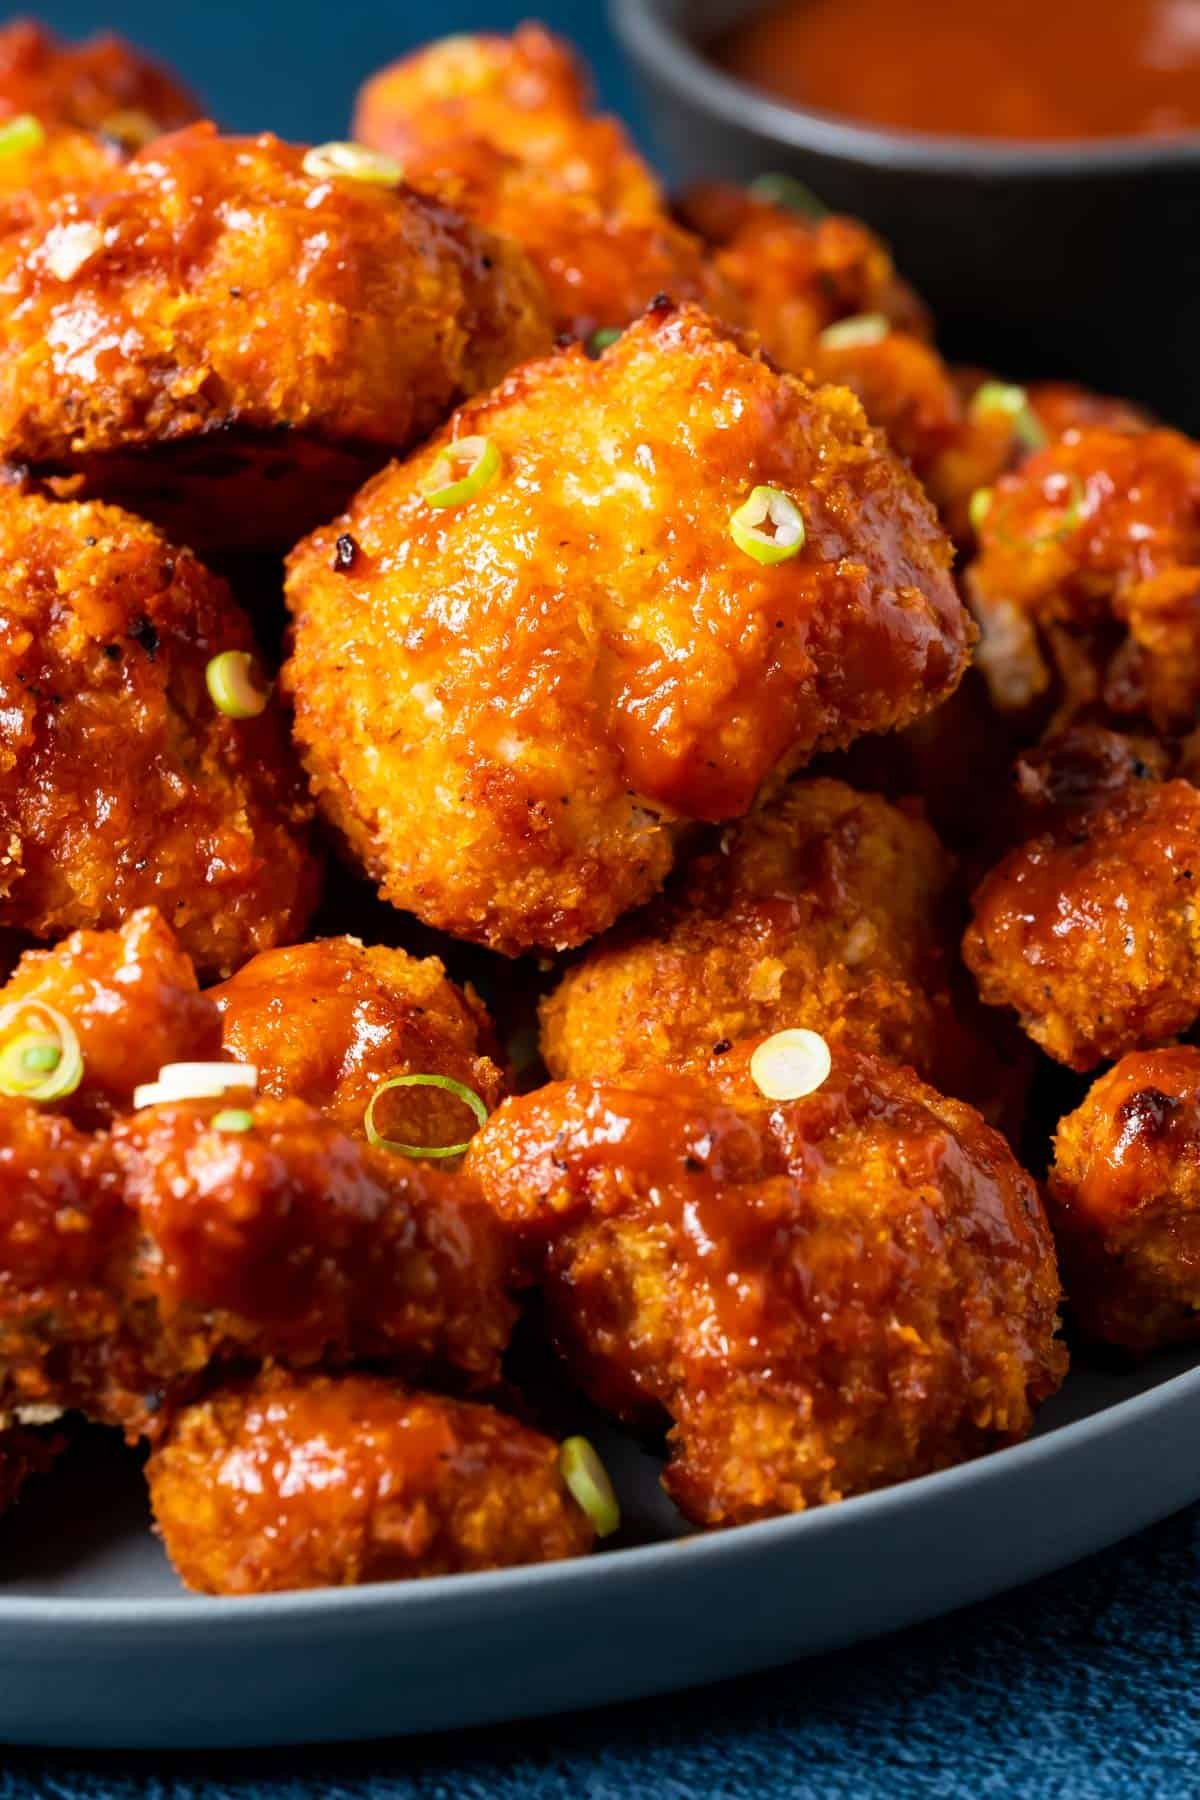 BBQ cauliflower wings on a plate with chopped spring onions.